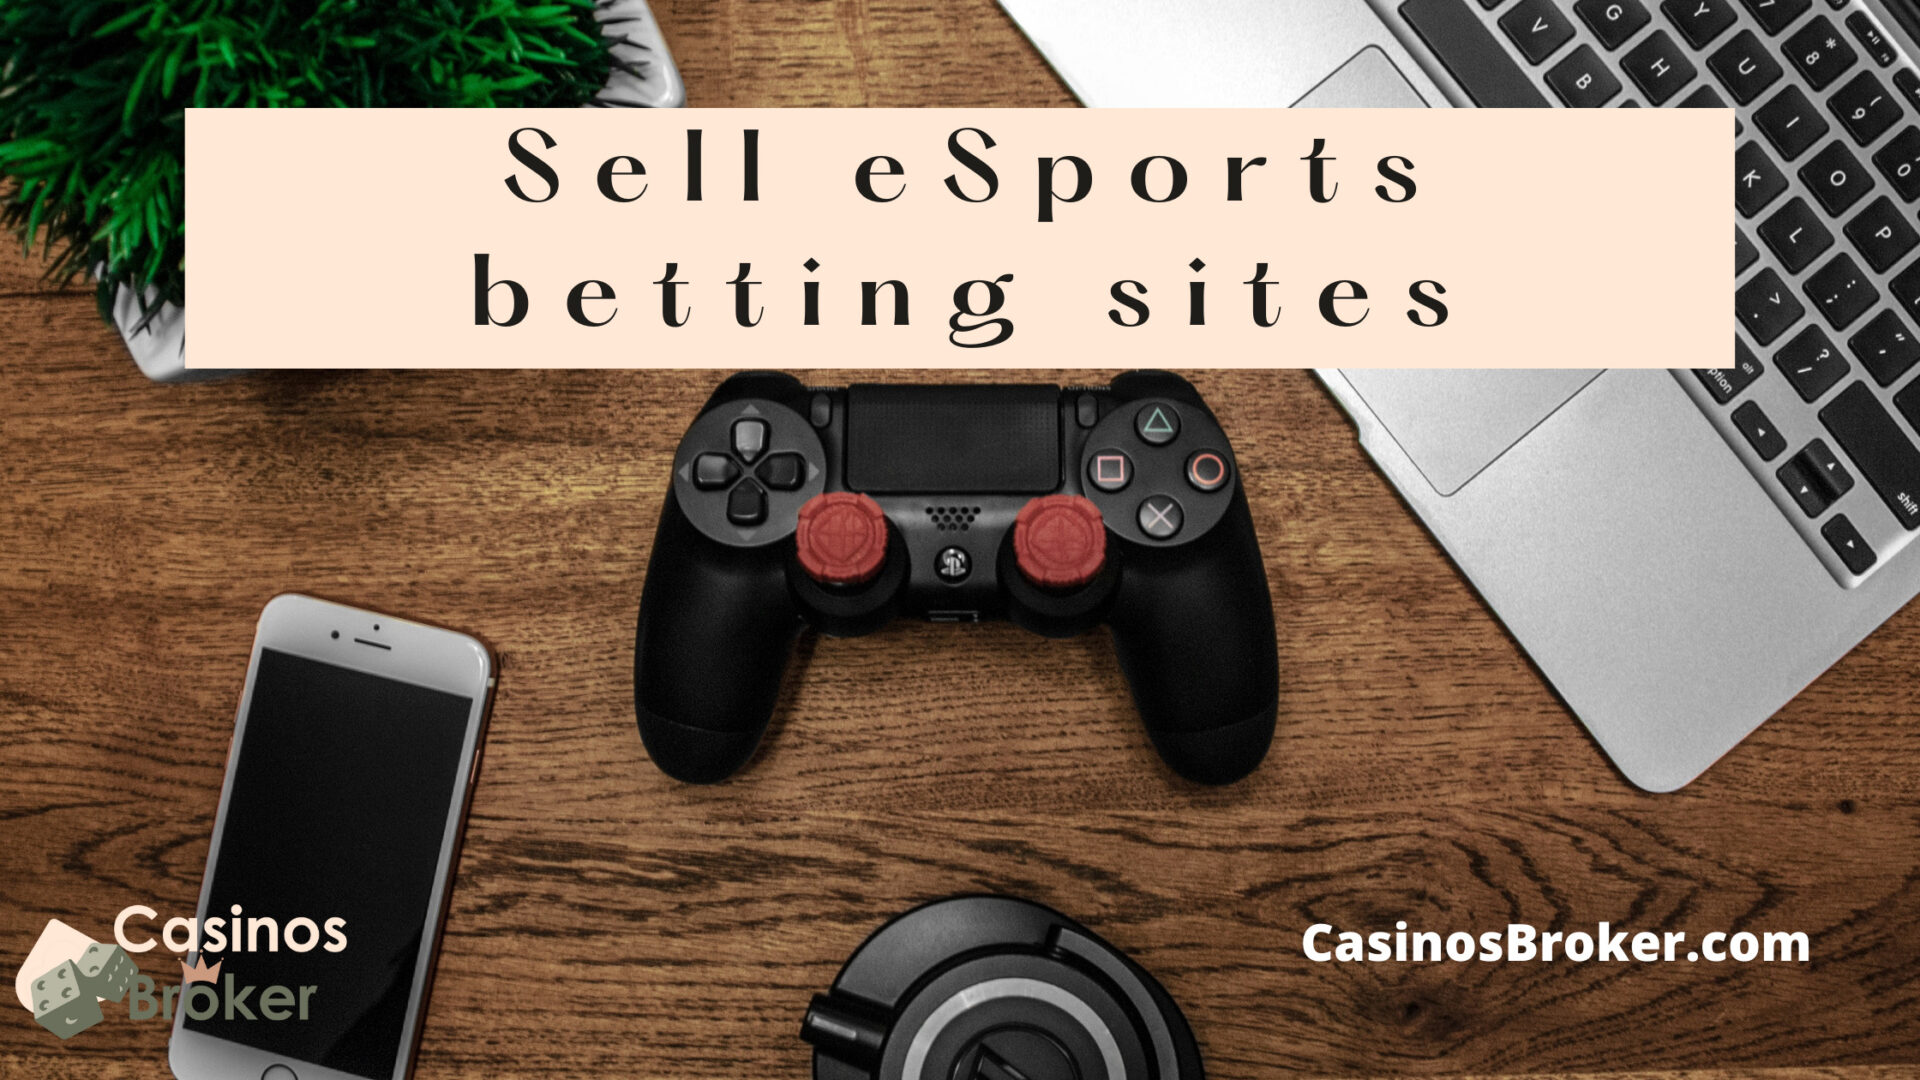 Sell eSports betting sites